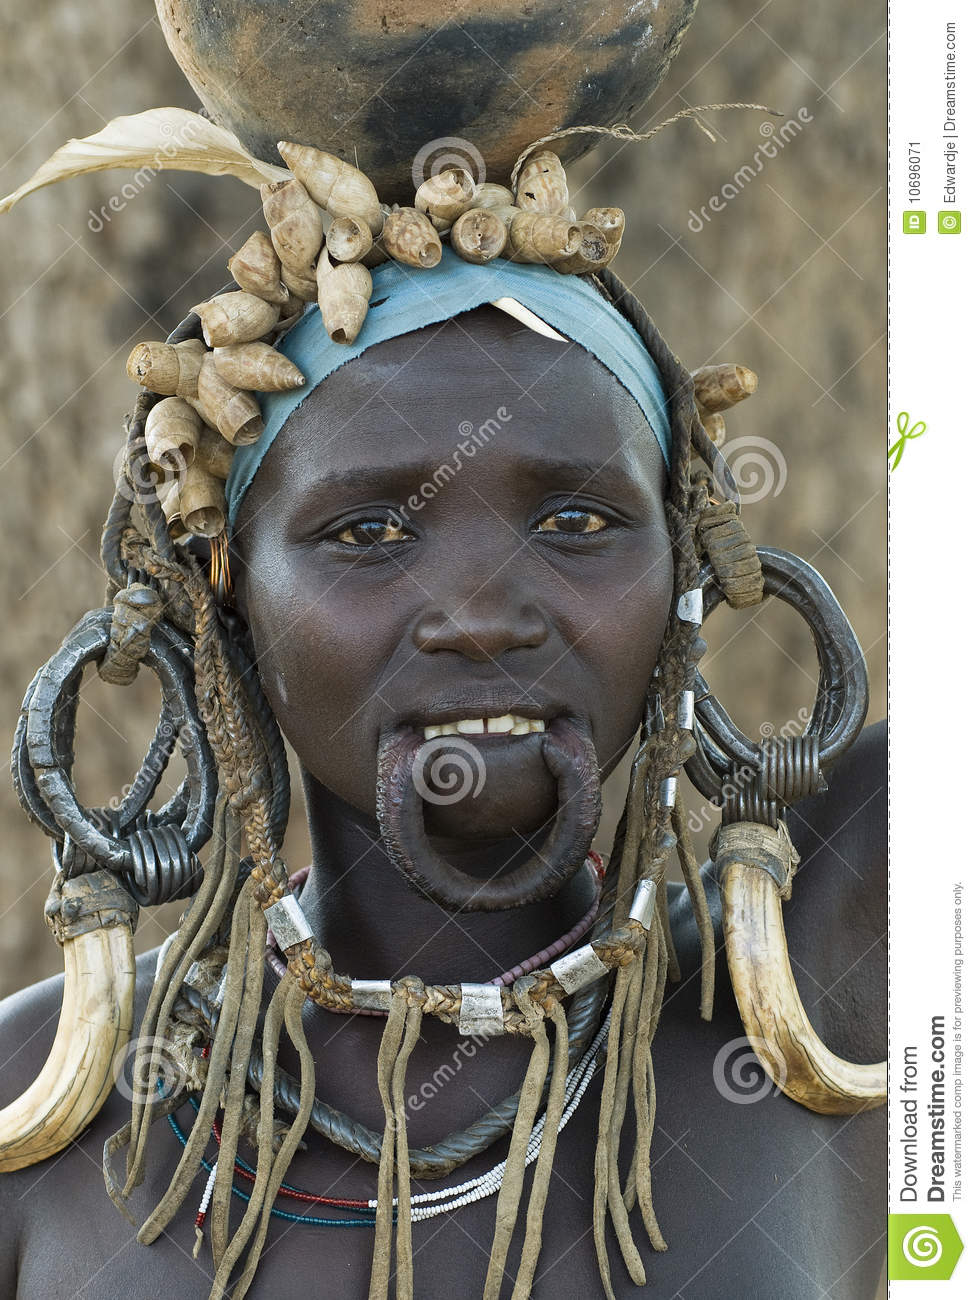 Http Www Dreamstime Com Stock Image African Mursi People 1 Image10696071